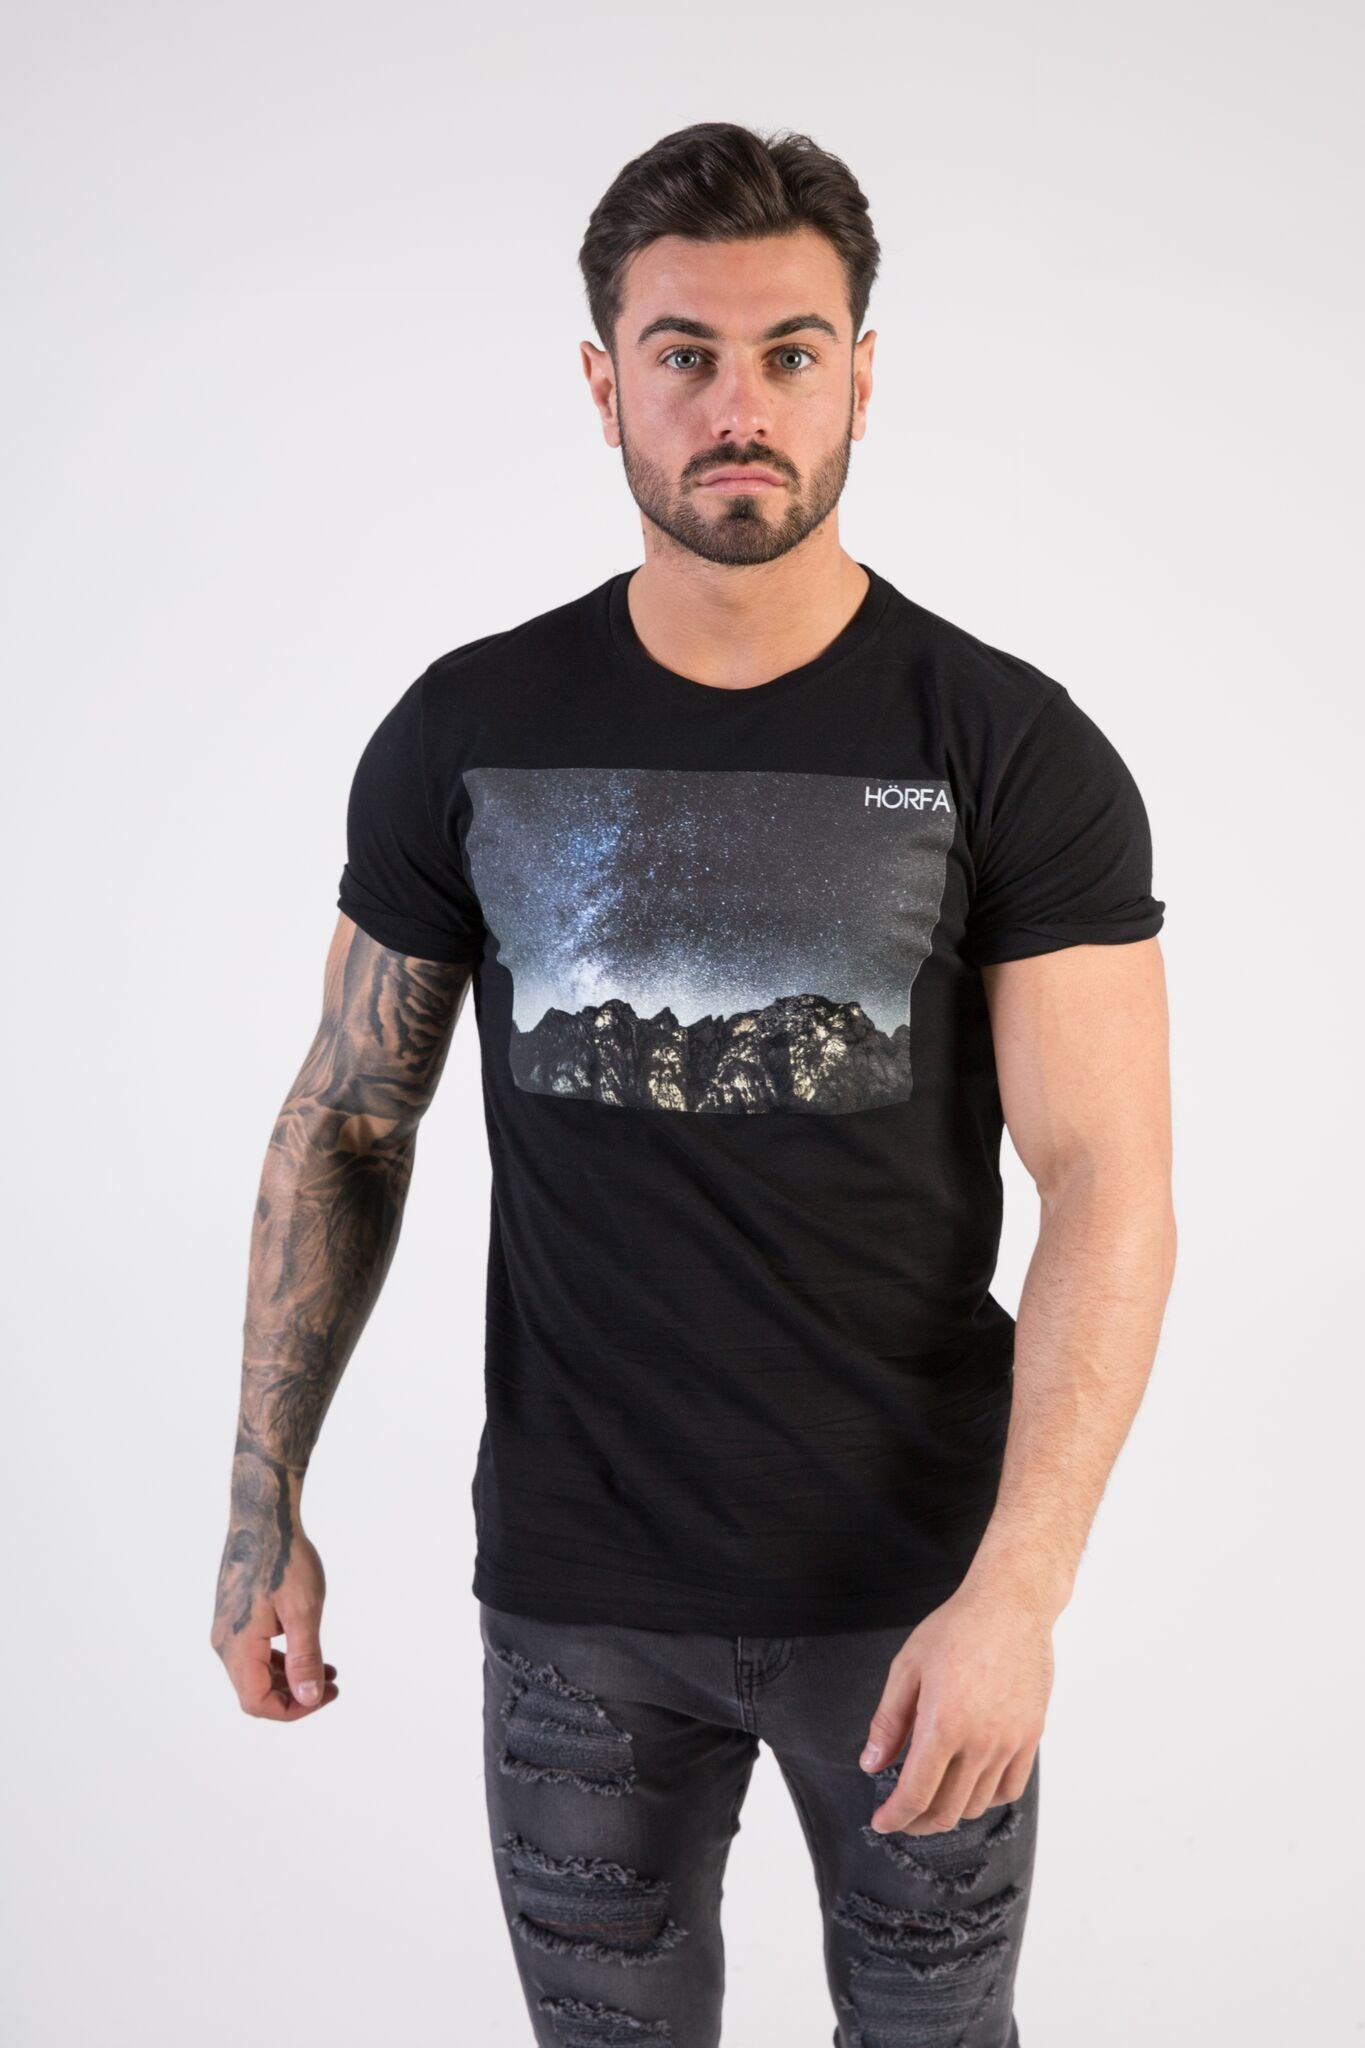 STARGAZER Muscle Fit T-Shirt - HÖRFA is a men's global fashion brand that provides products such as Fashionable Watches, Wallets, Sunglasses, Belts, Beard and Male Grooming Products